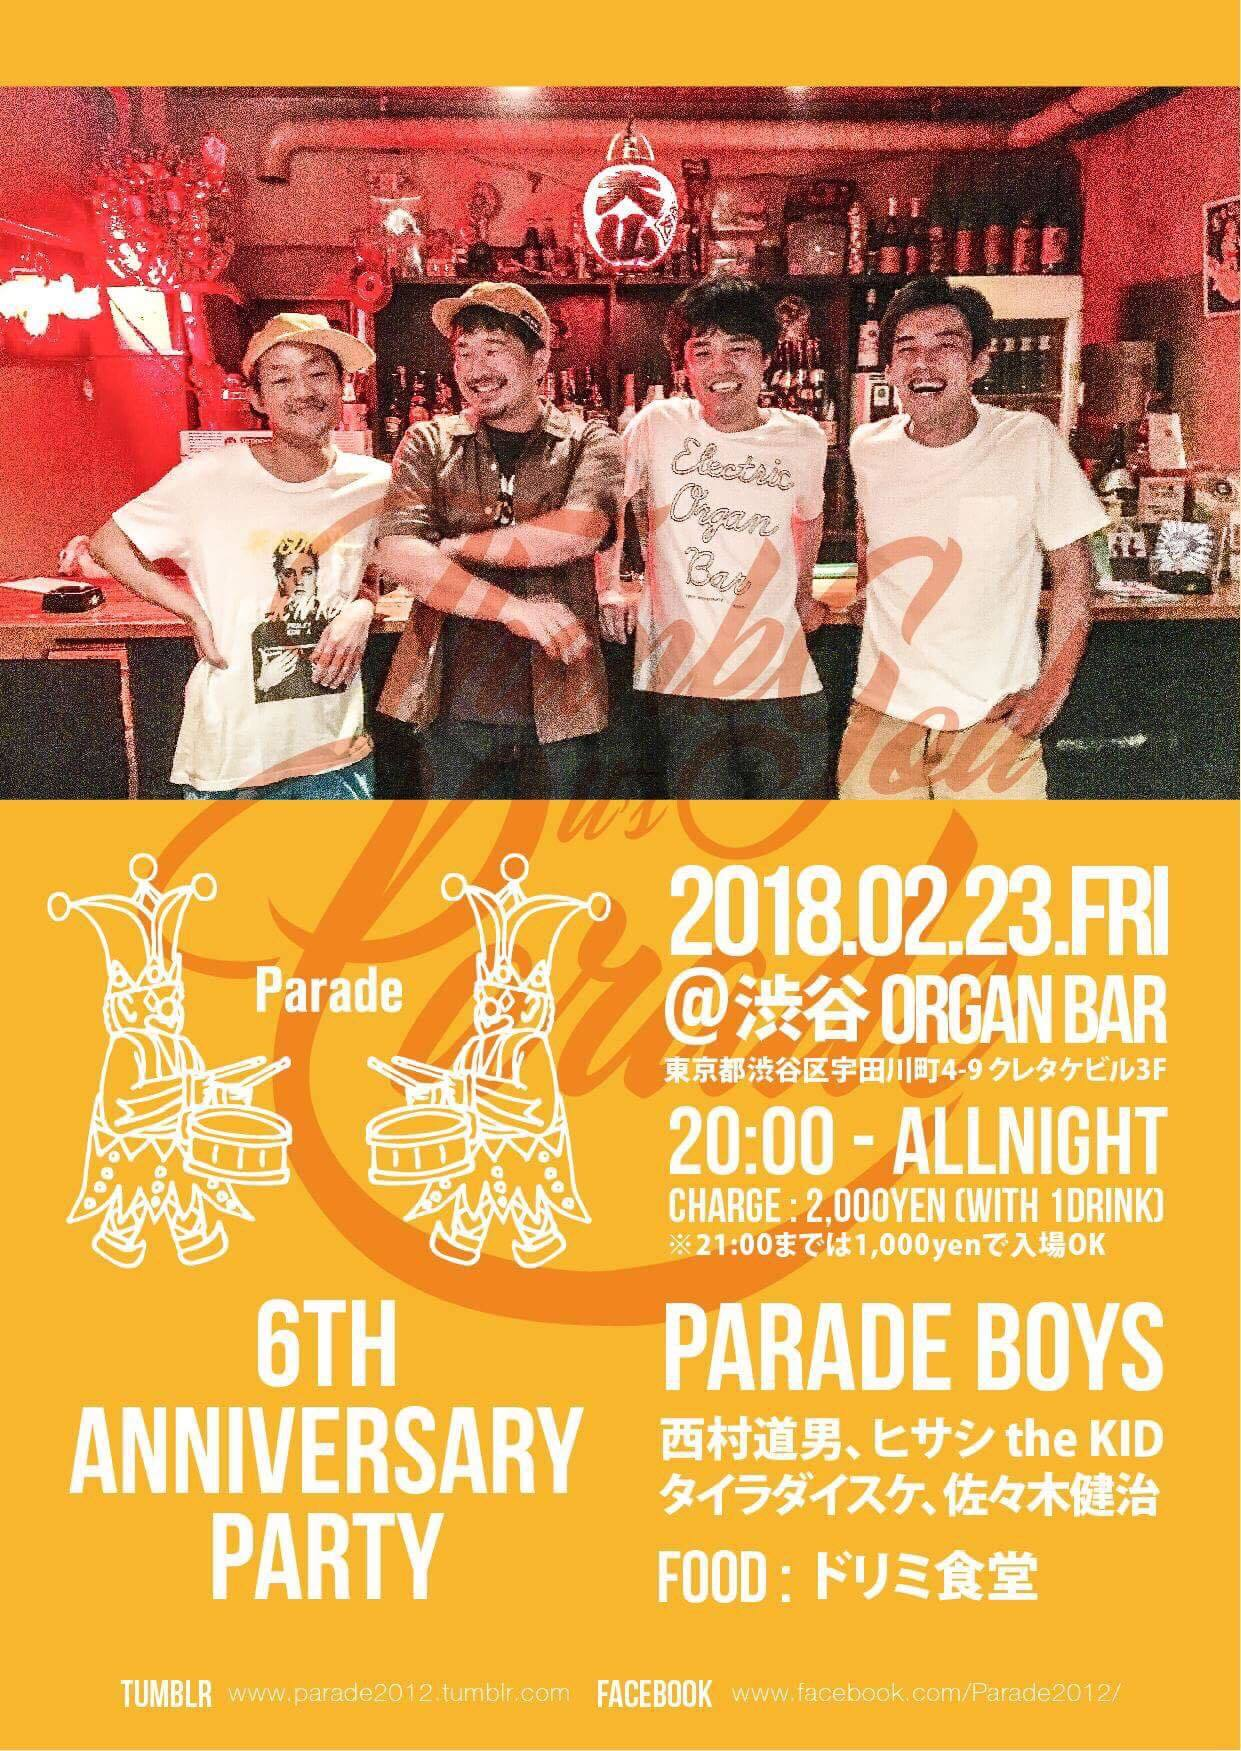 2/23 (FRI) 「Parade 6th Anniversary Party」 @渋谷 Organ Bar_e0153779_21505454.jpg